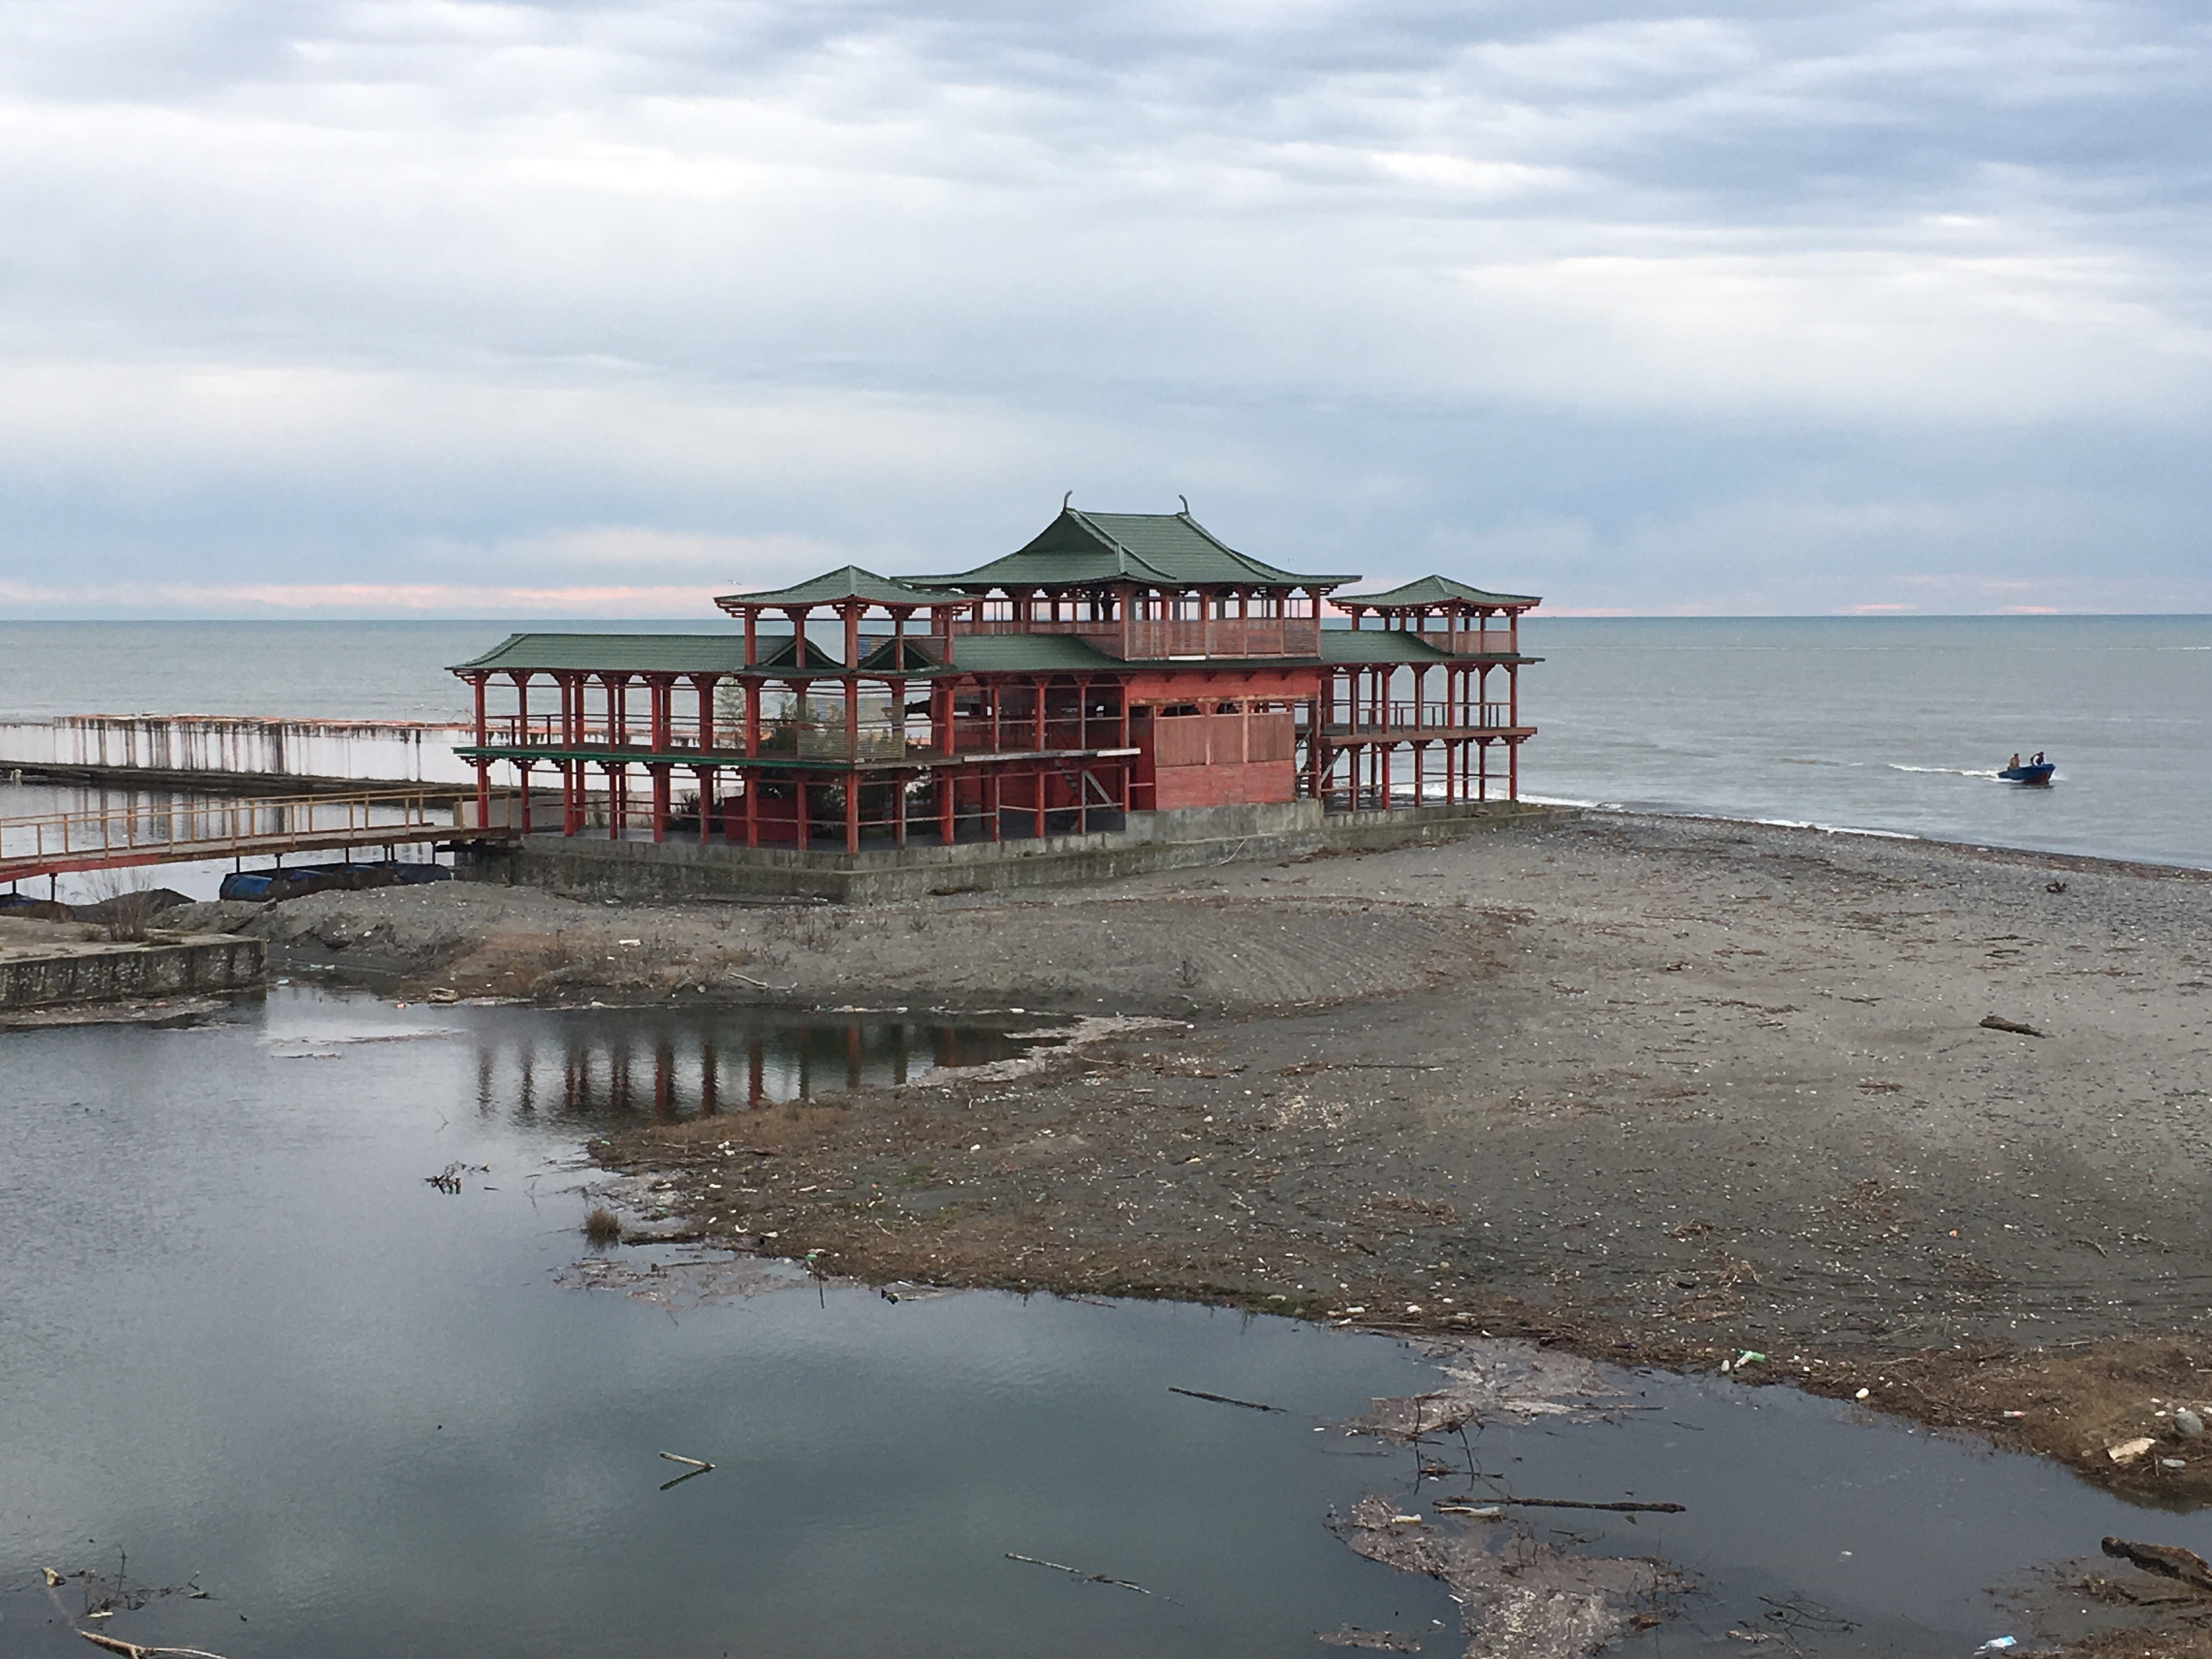 Chinese-style beach pavilion near the Anaklia Port